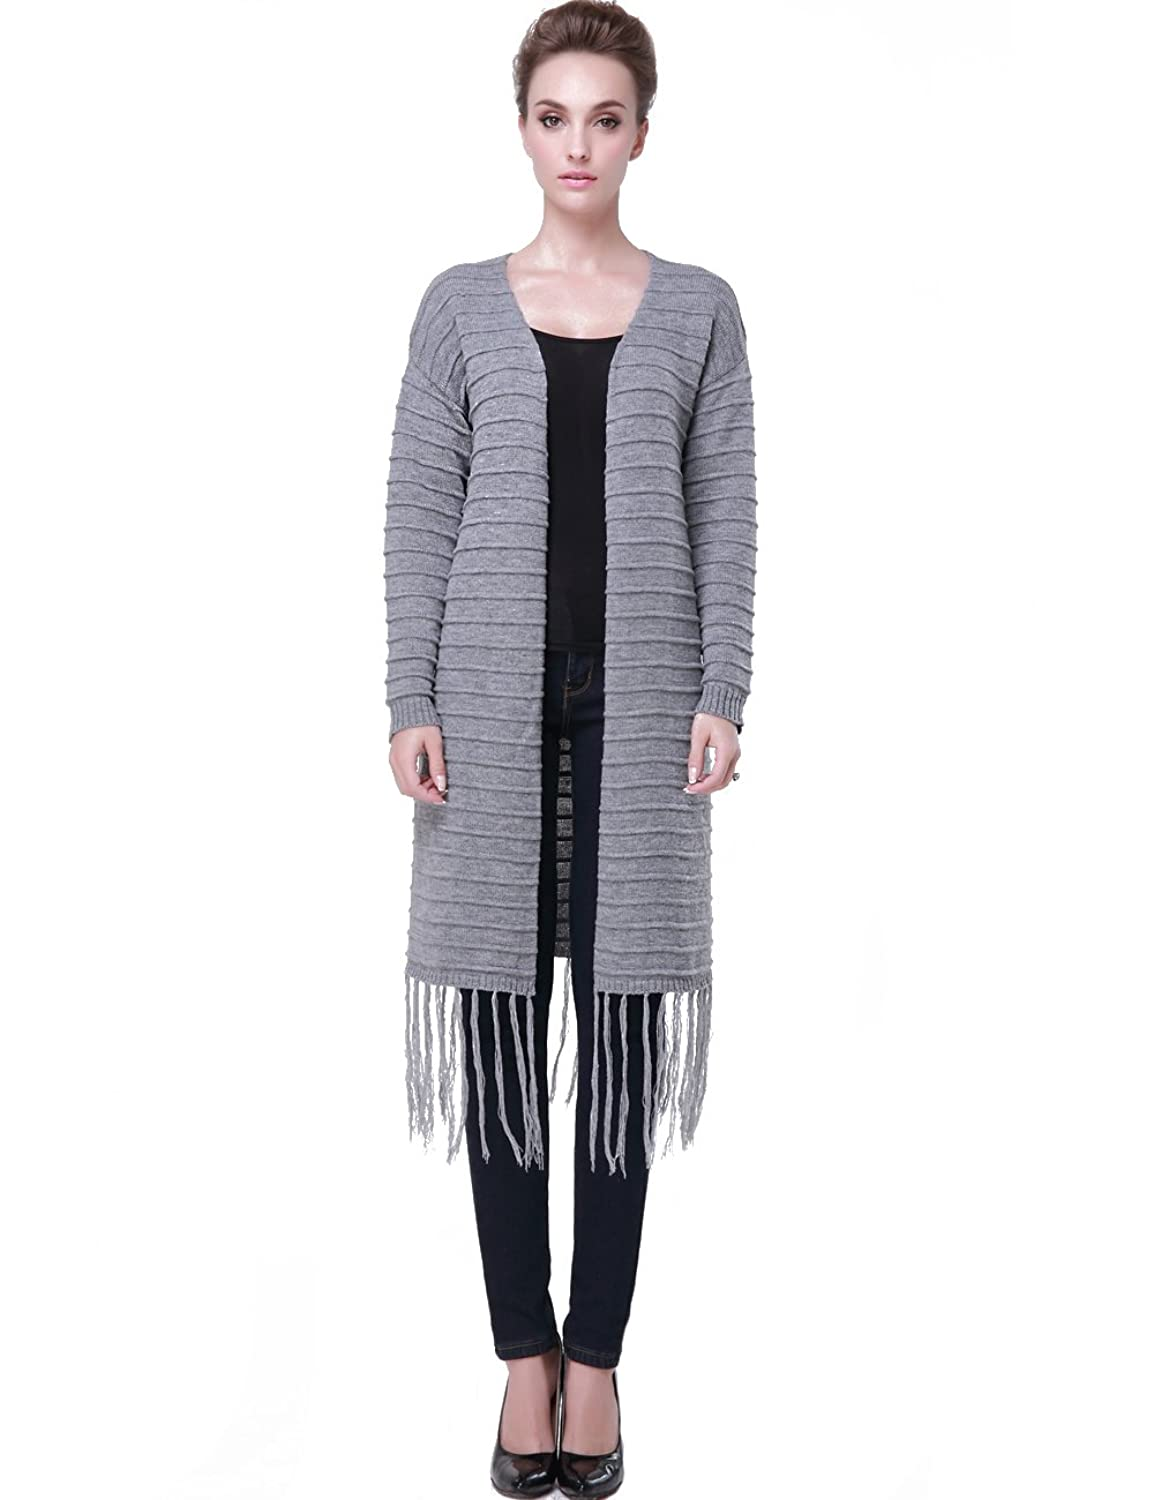 Camii Mia Women's Tassels Rib V-Neck Long Cardigan